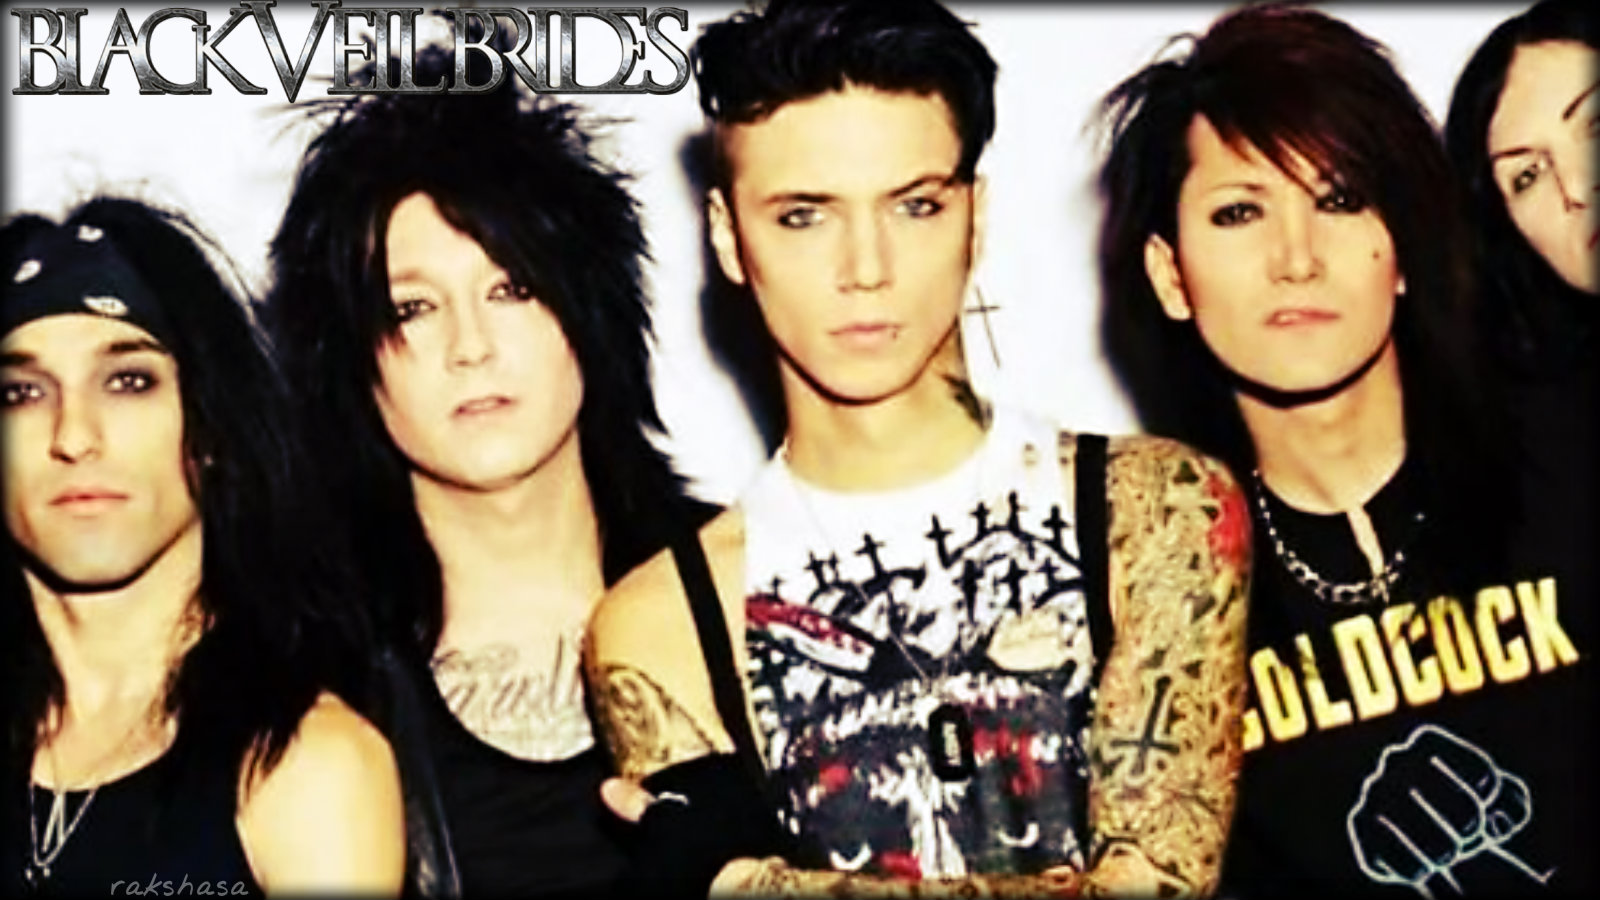 Black Veil Brides   Black Veil Brides Wallpaper 36360960 1600x900